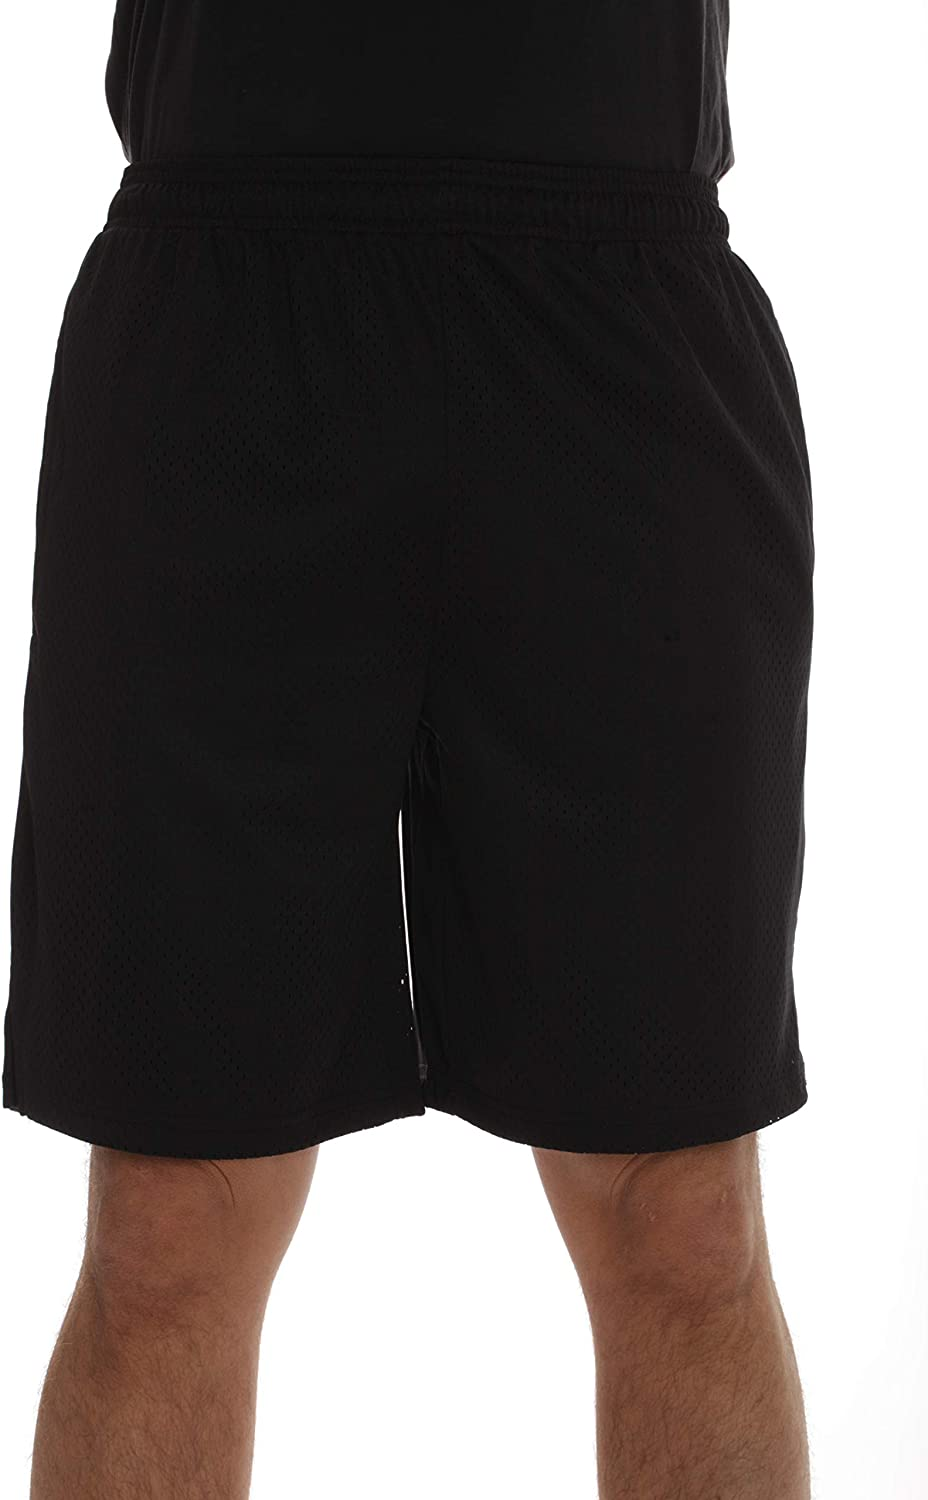 At The Buzzer Boys Athletic Mesh Basketball Sports Shorts with Pockets